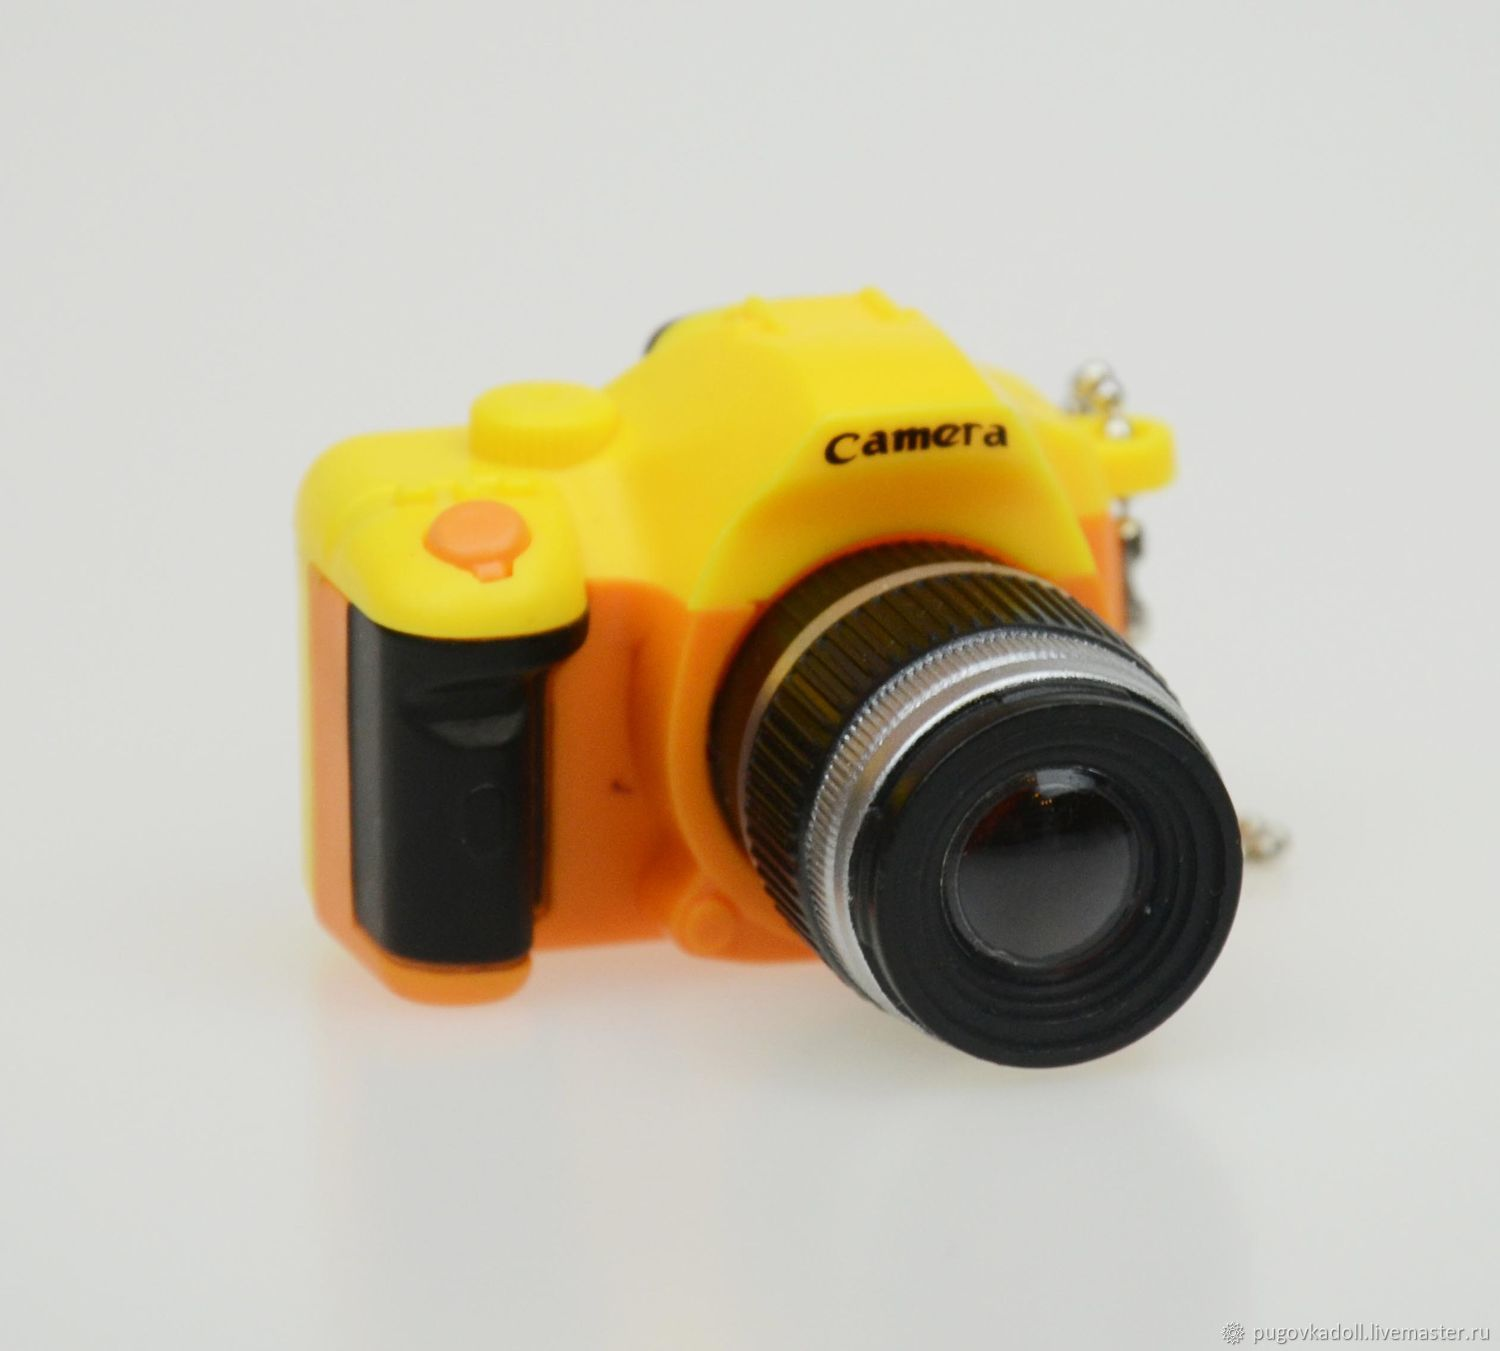 Miniature toys: Camera for toy, Miniature figurines, Moscow,  Фото №1